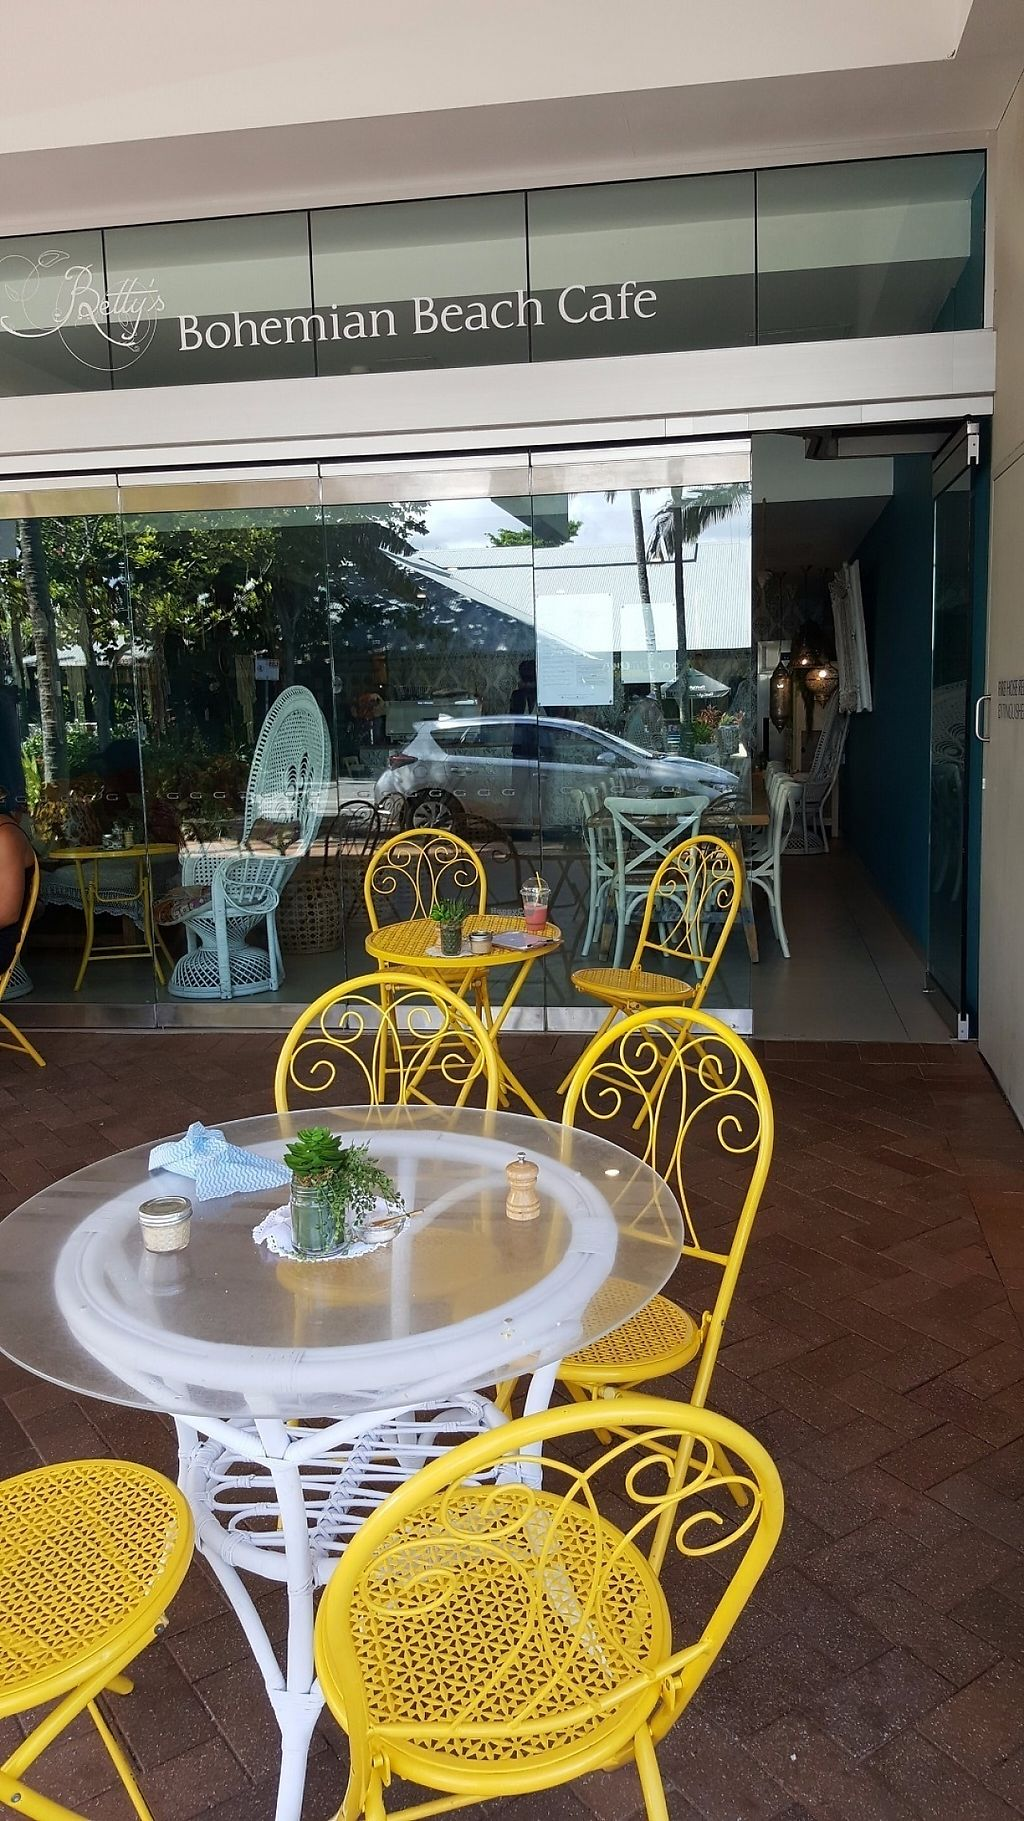 "Photo of Betty's Bohemian Beach Cafe  by <a href=""/members/profile/Hotfuzzy69"">Hotfuzzy69</a> <br/>Outdoor seating <br/> April 25, 2017  - <a href='/contact/abuse/image/66012/252180'>Report</a>"